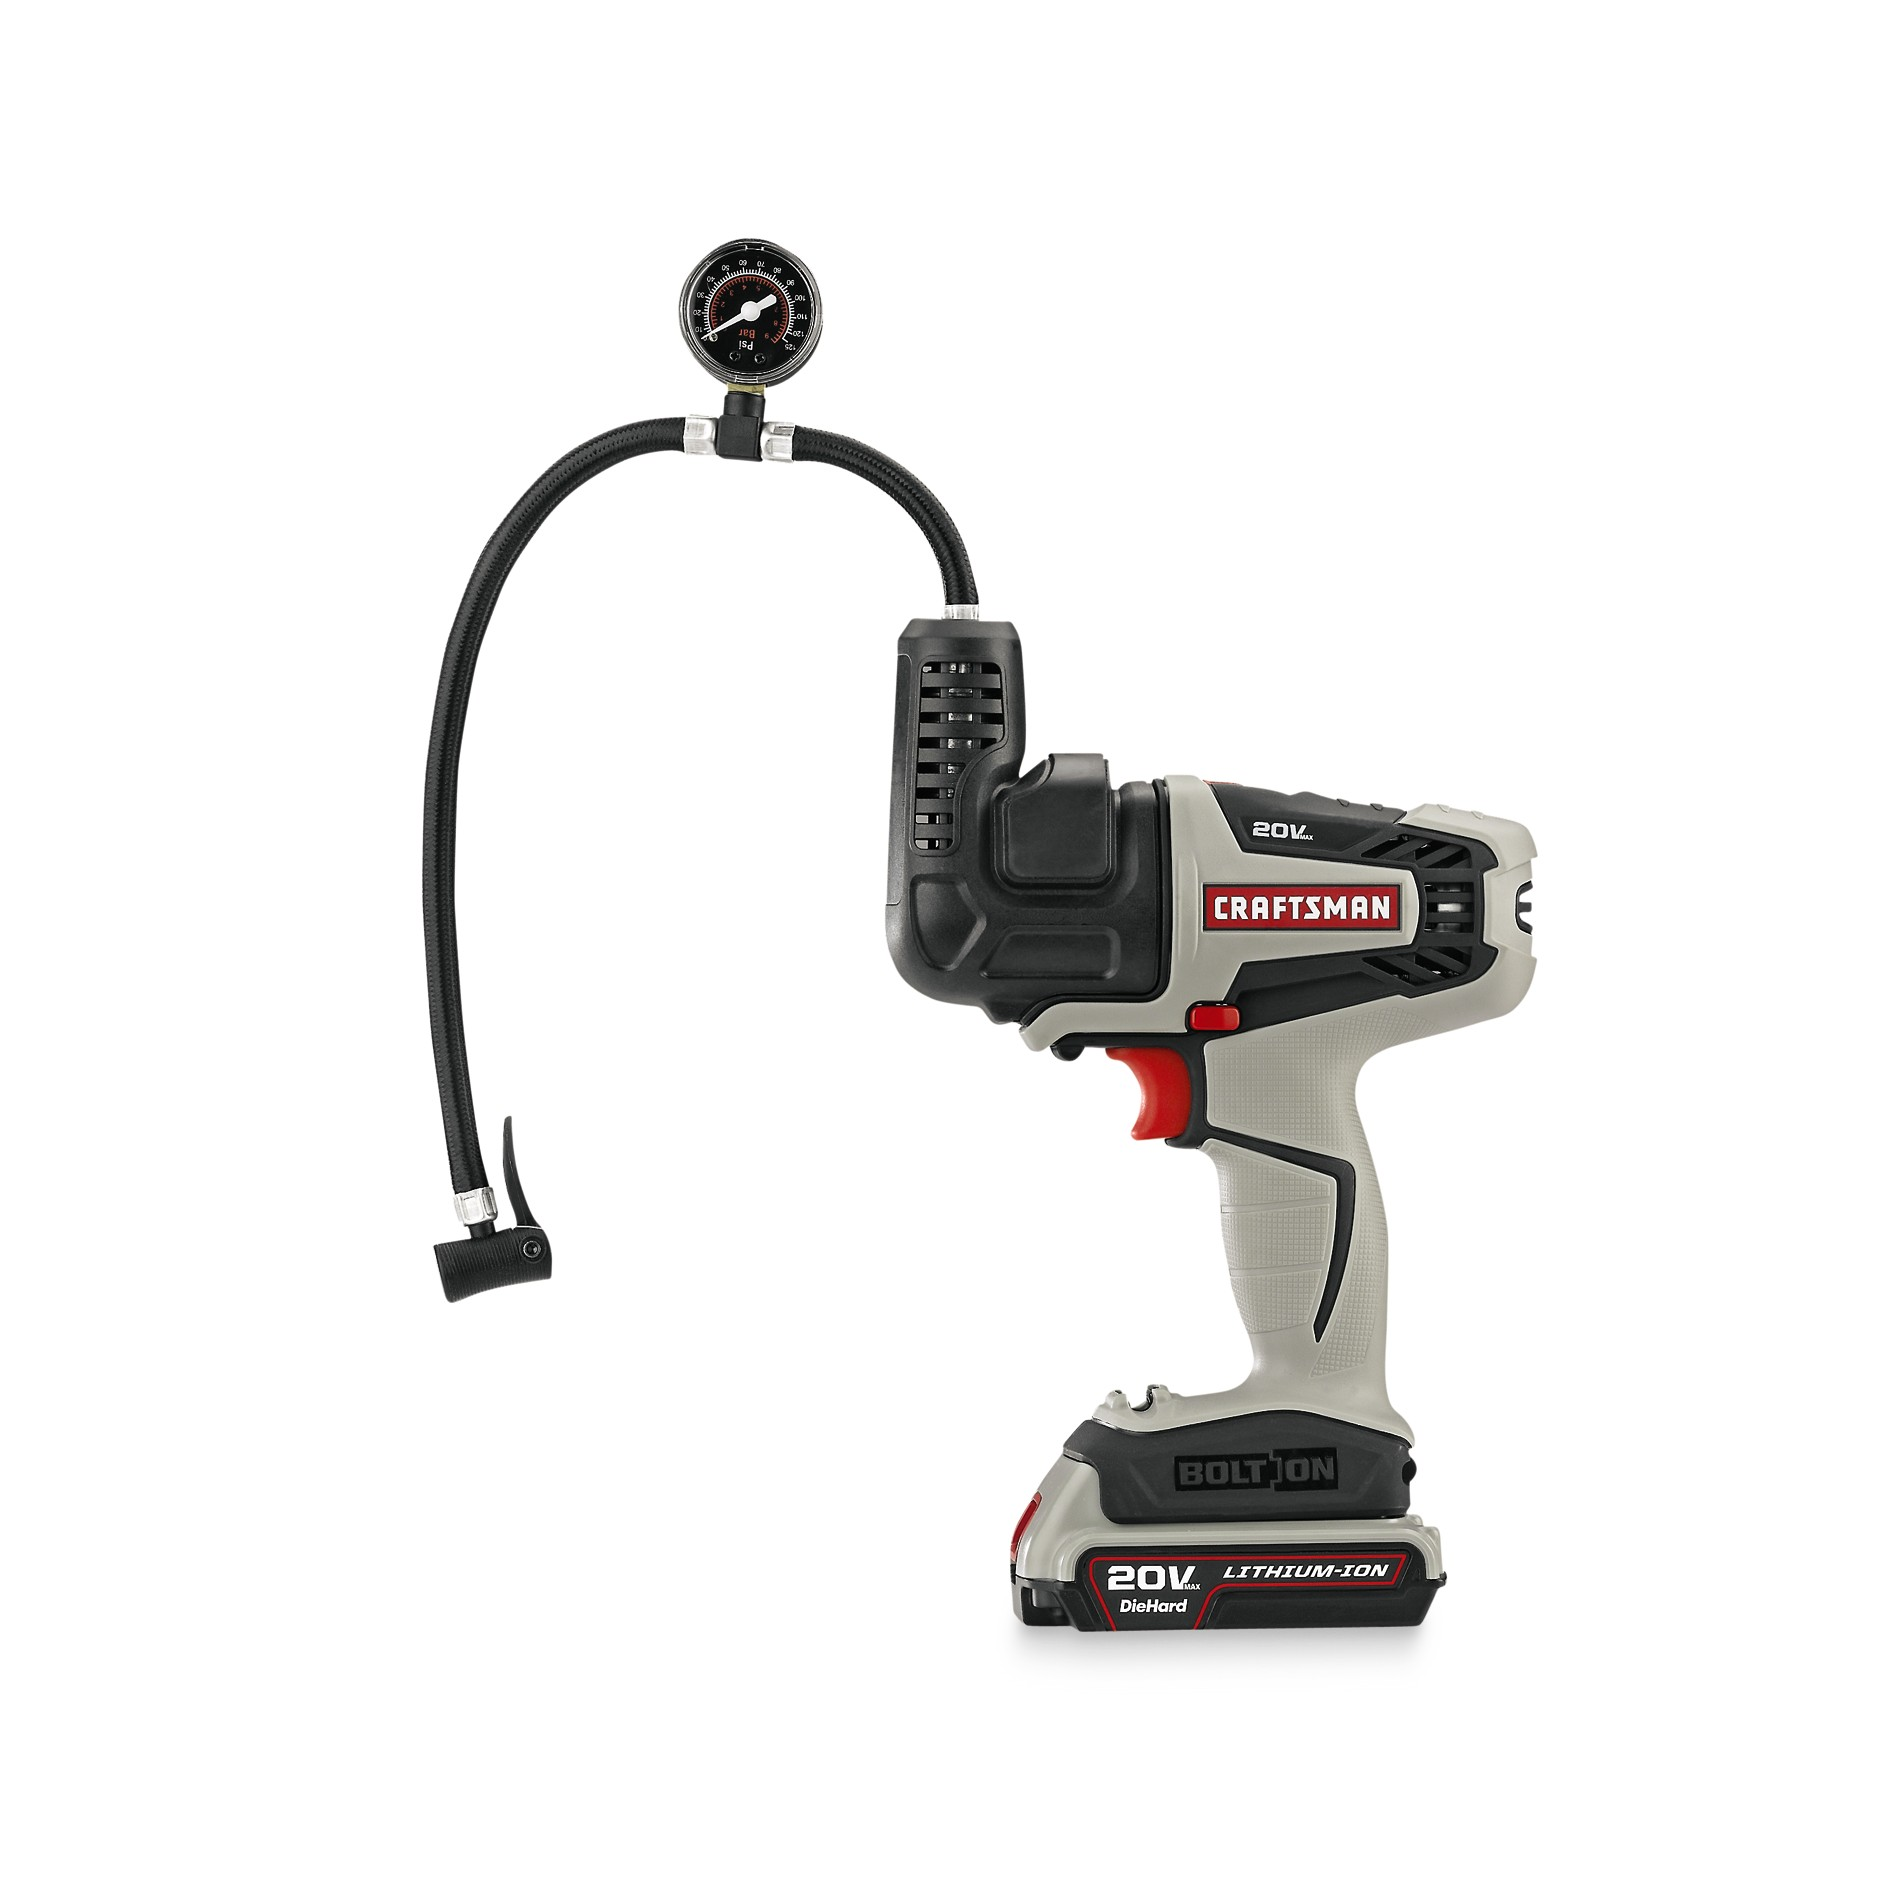 Craftsman Bolt-On ™  High Pressure Inflator Attachment